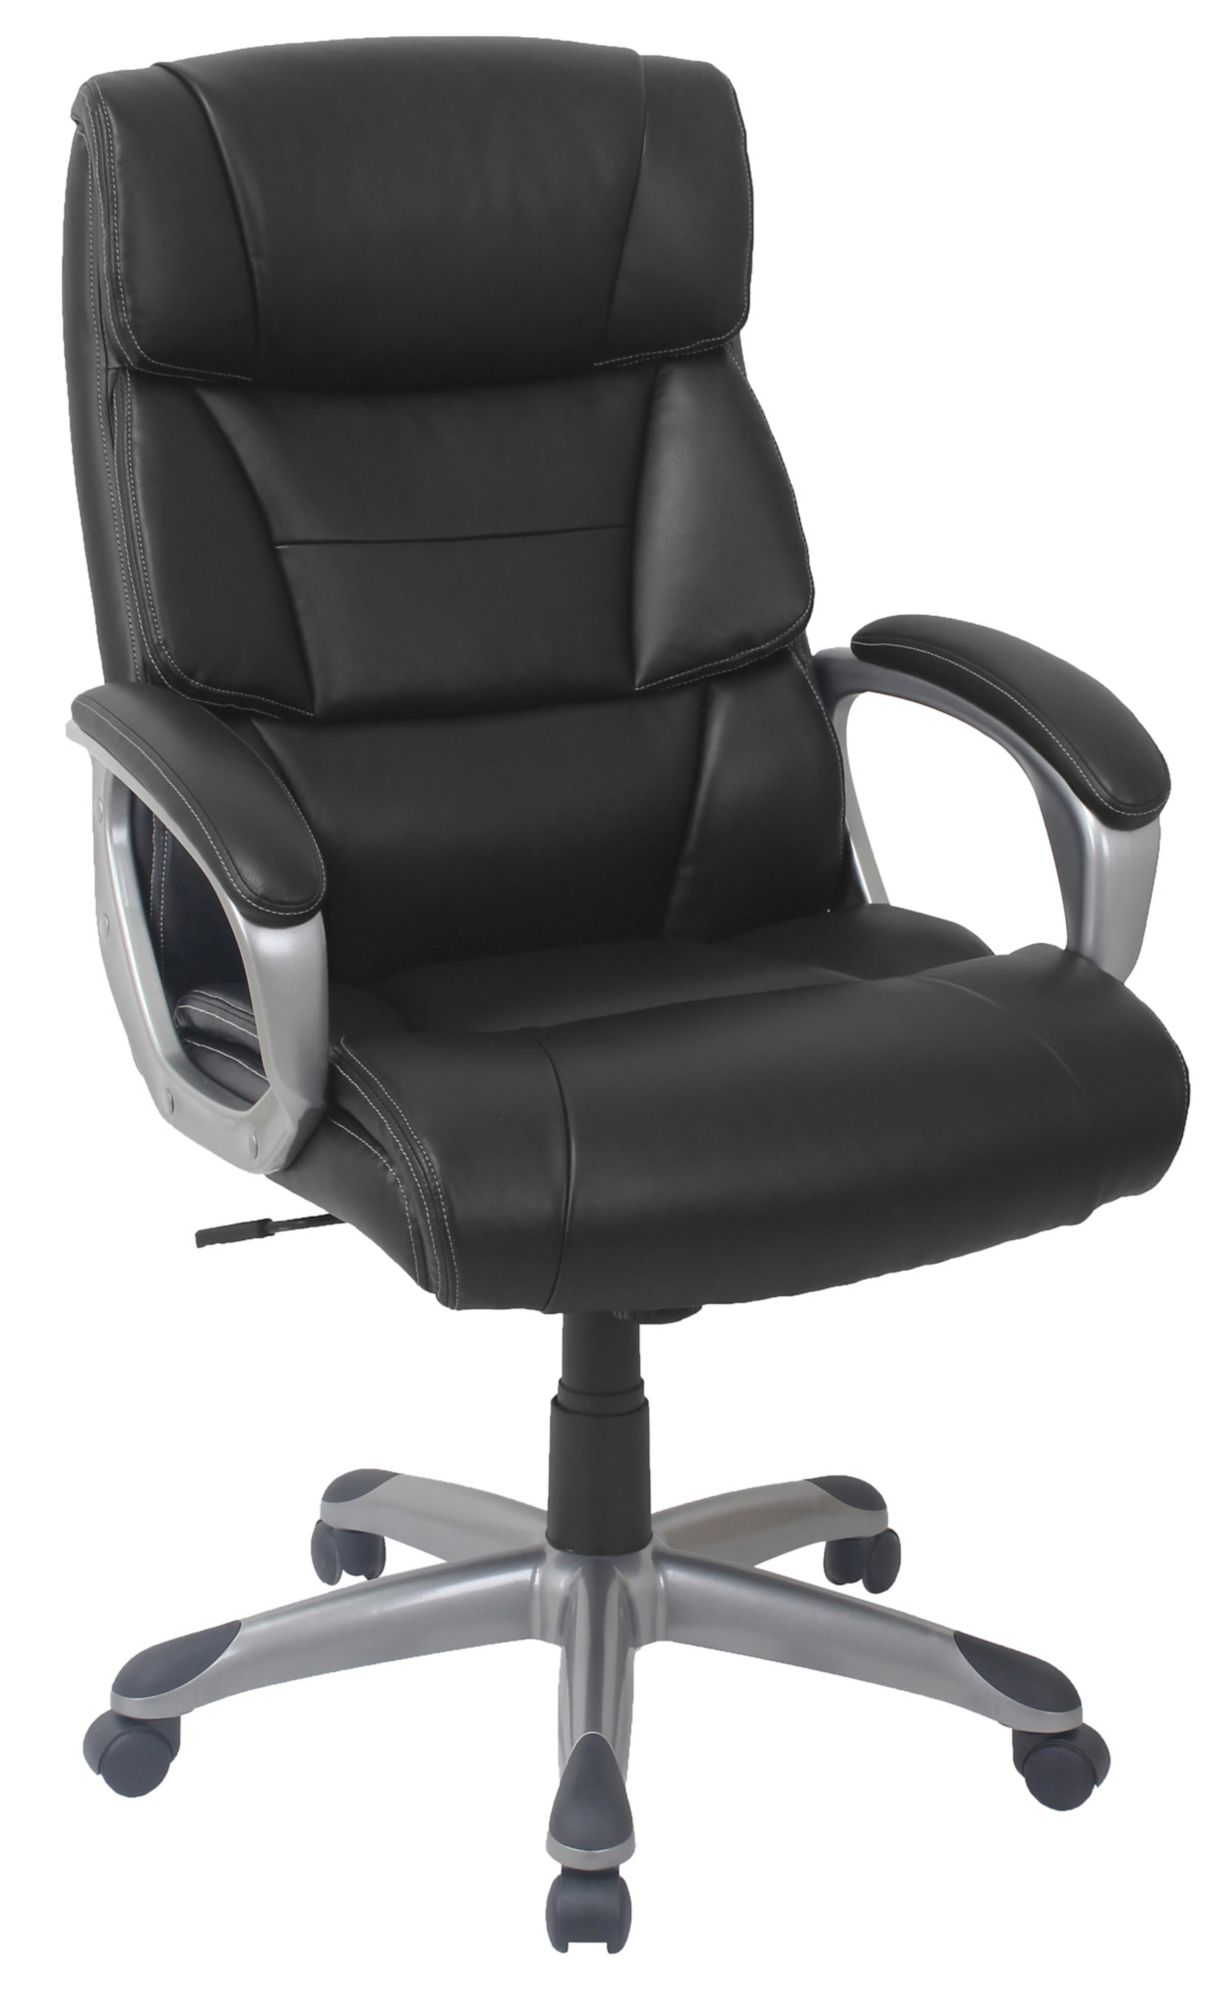 Use + and - keys to zoom in and out arrow keys move the zoomed portion of the image  sc 1 st  BJs.com & Berkley Jensen Bonded Leather Manager Chair - Black/Gray - BJs ...